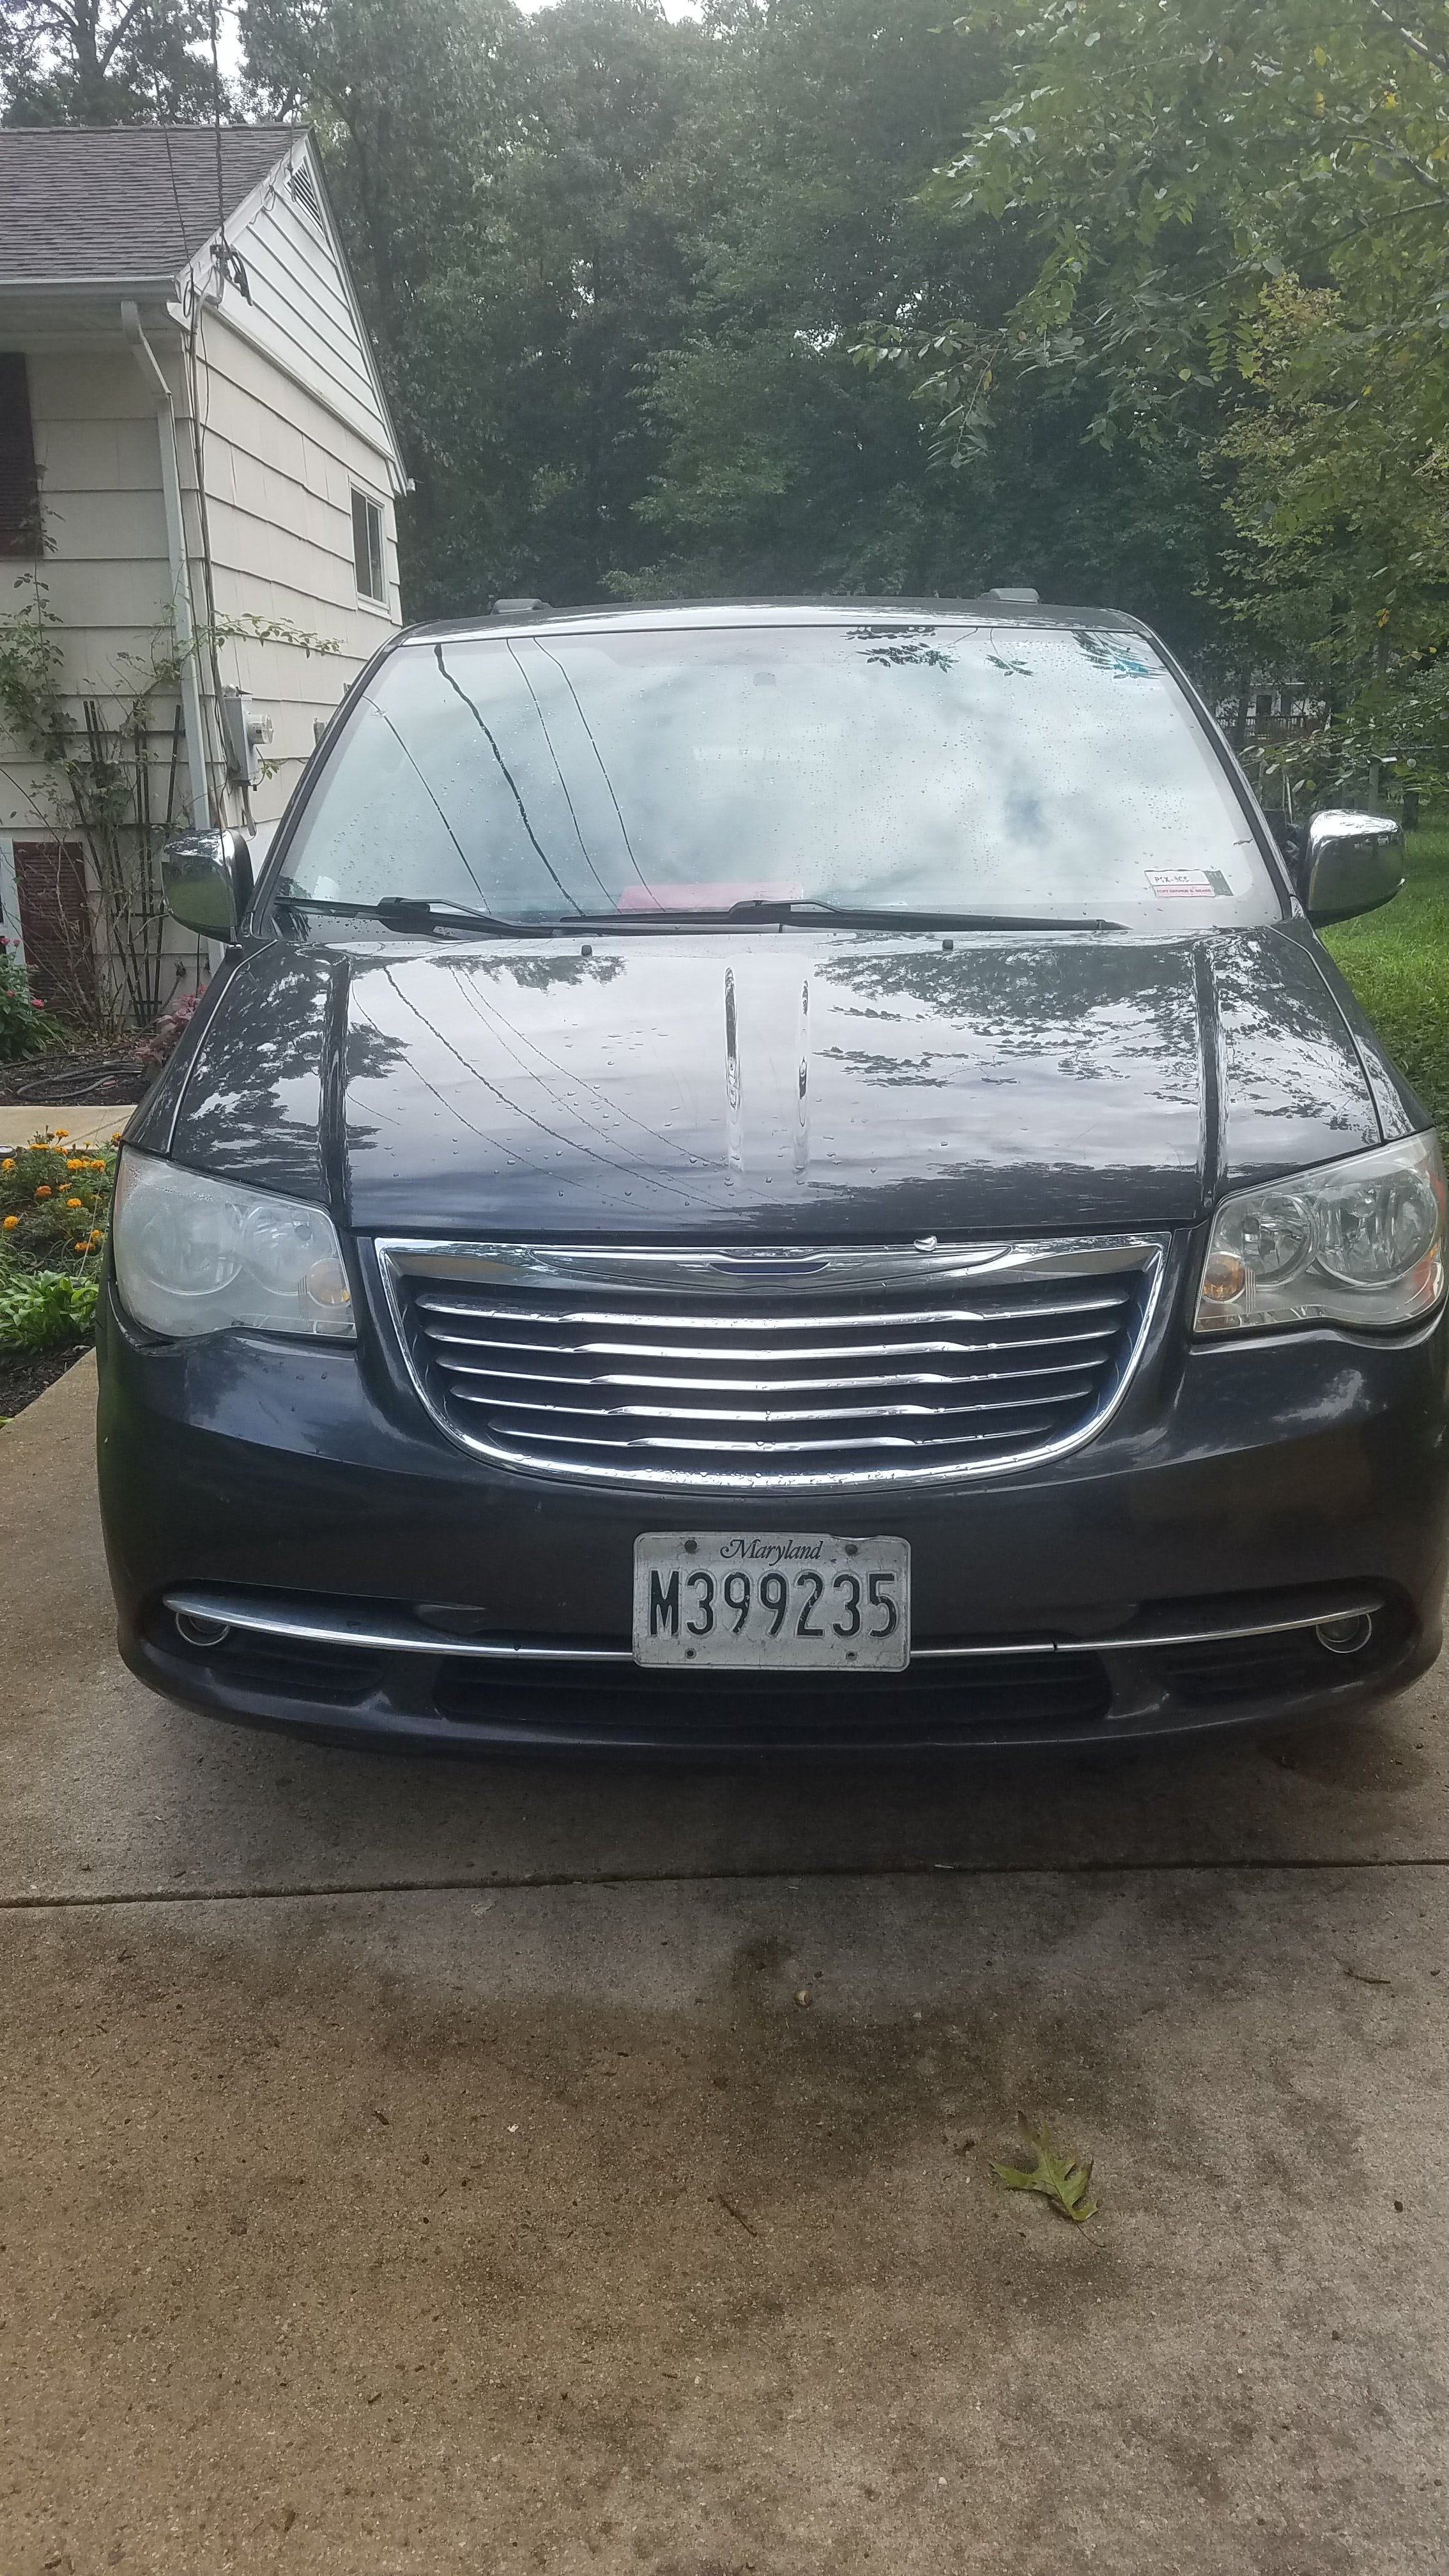 Junk 2012 Chrysler Town & Country in Severn